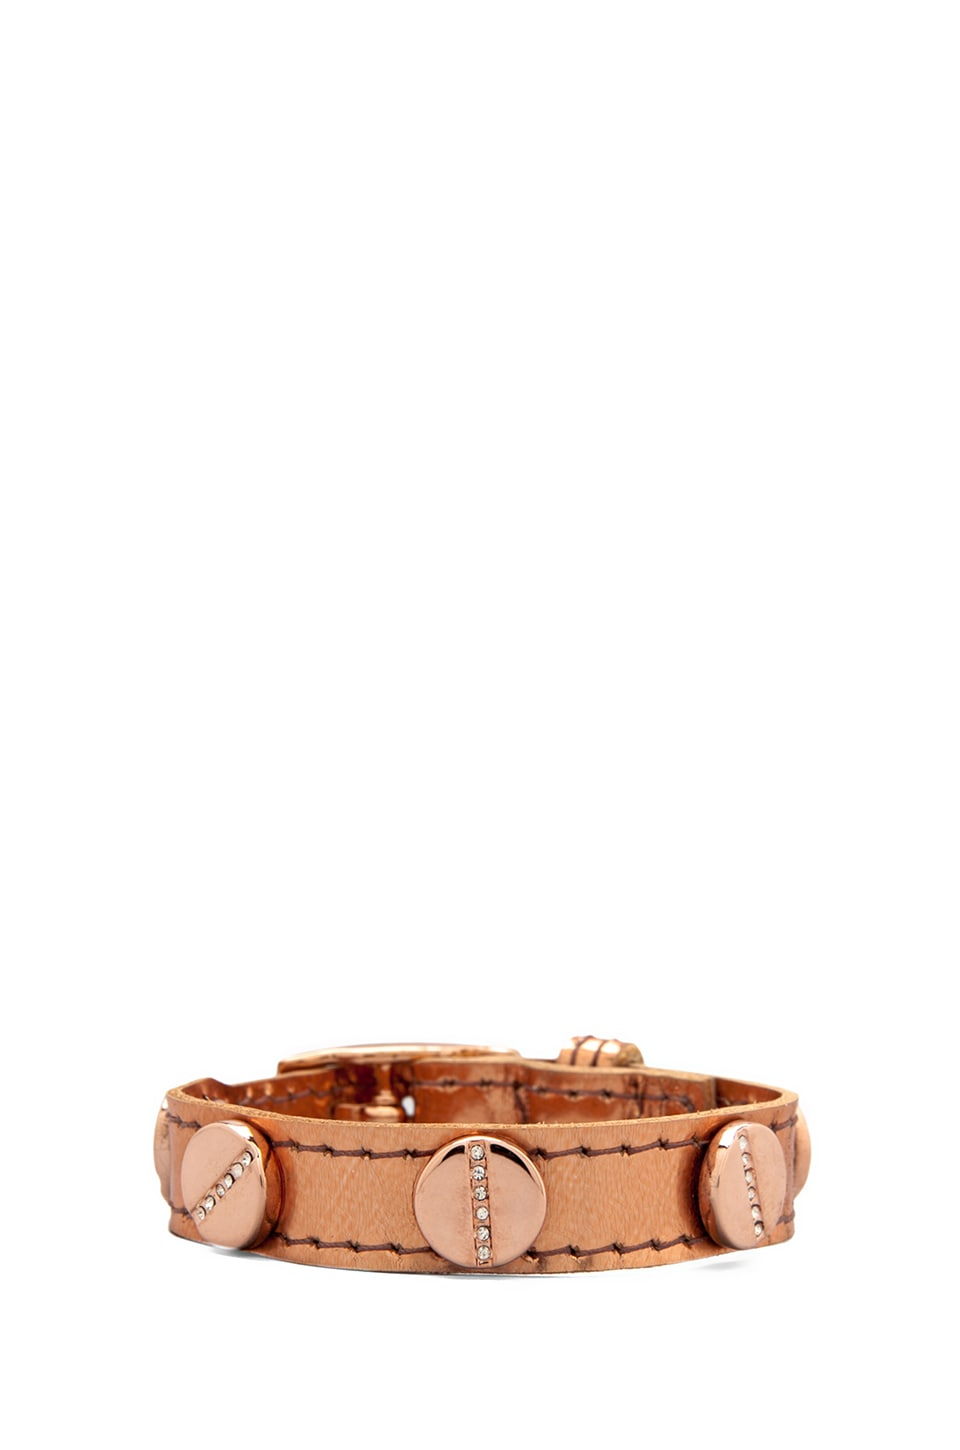 CC Skye The Single Wrap Pave Screw Bracelet in Liquid Rose Gold/Pave Rose Gold